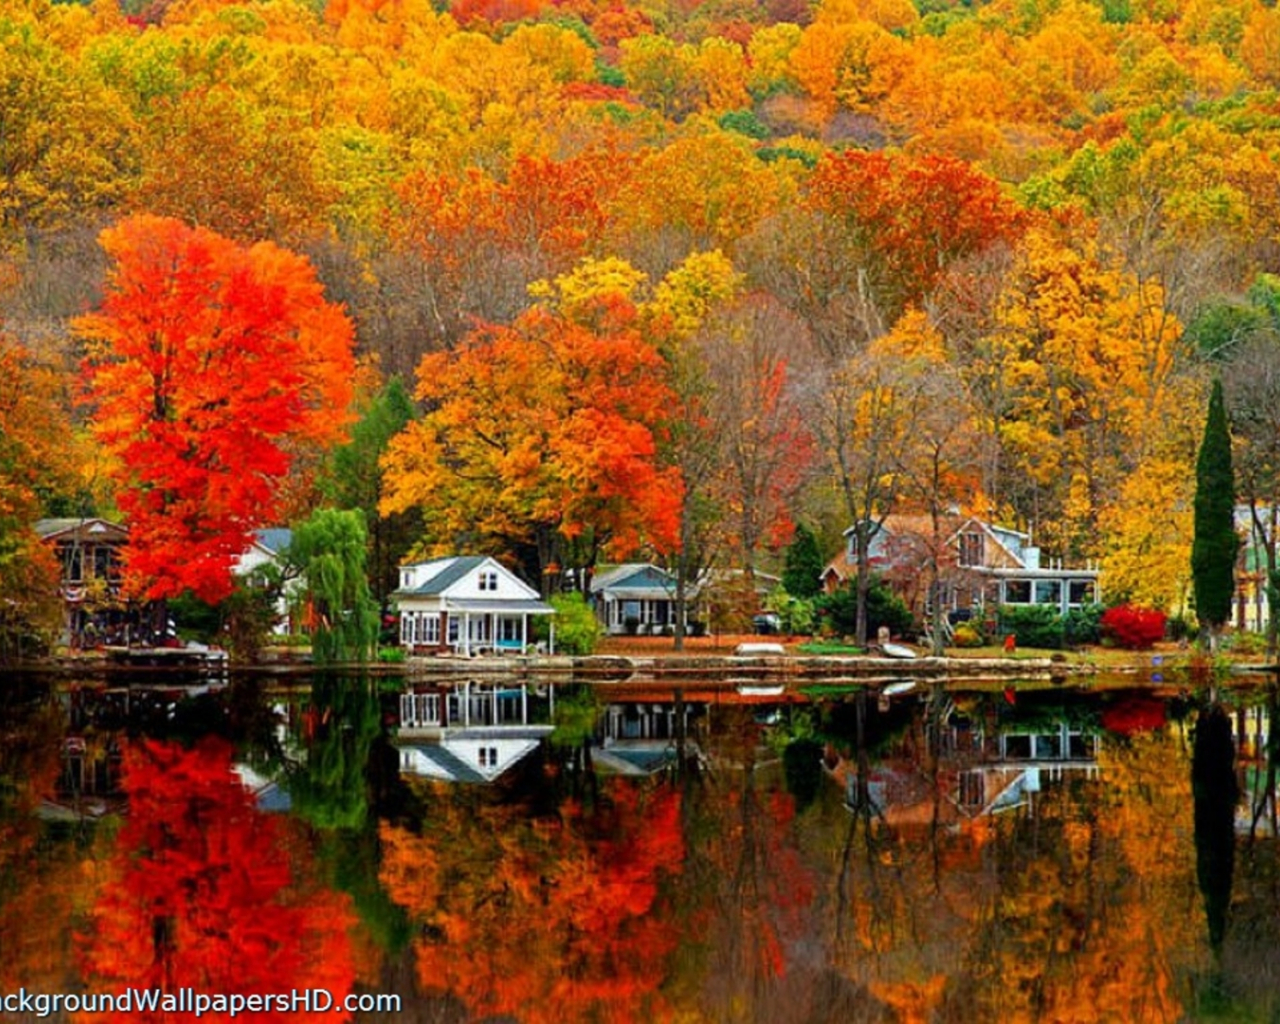 Free Download Autumn Scenes Resolution 1920x1080 Pixelsuper Cool Hd Wallpapers 1440x1080 For Your Desktop Mobile Tablet Explore 41 New England Fall Desktop Wallpaper England Wallpaper For Desktop New England